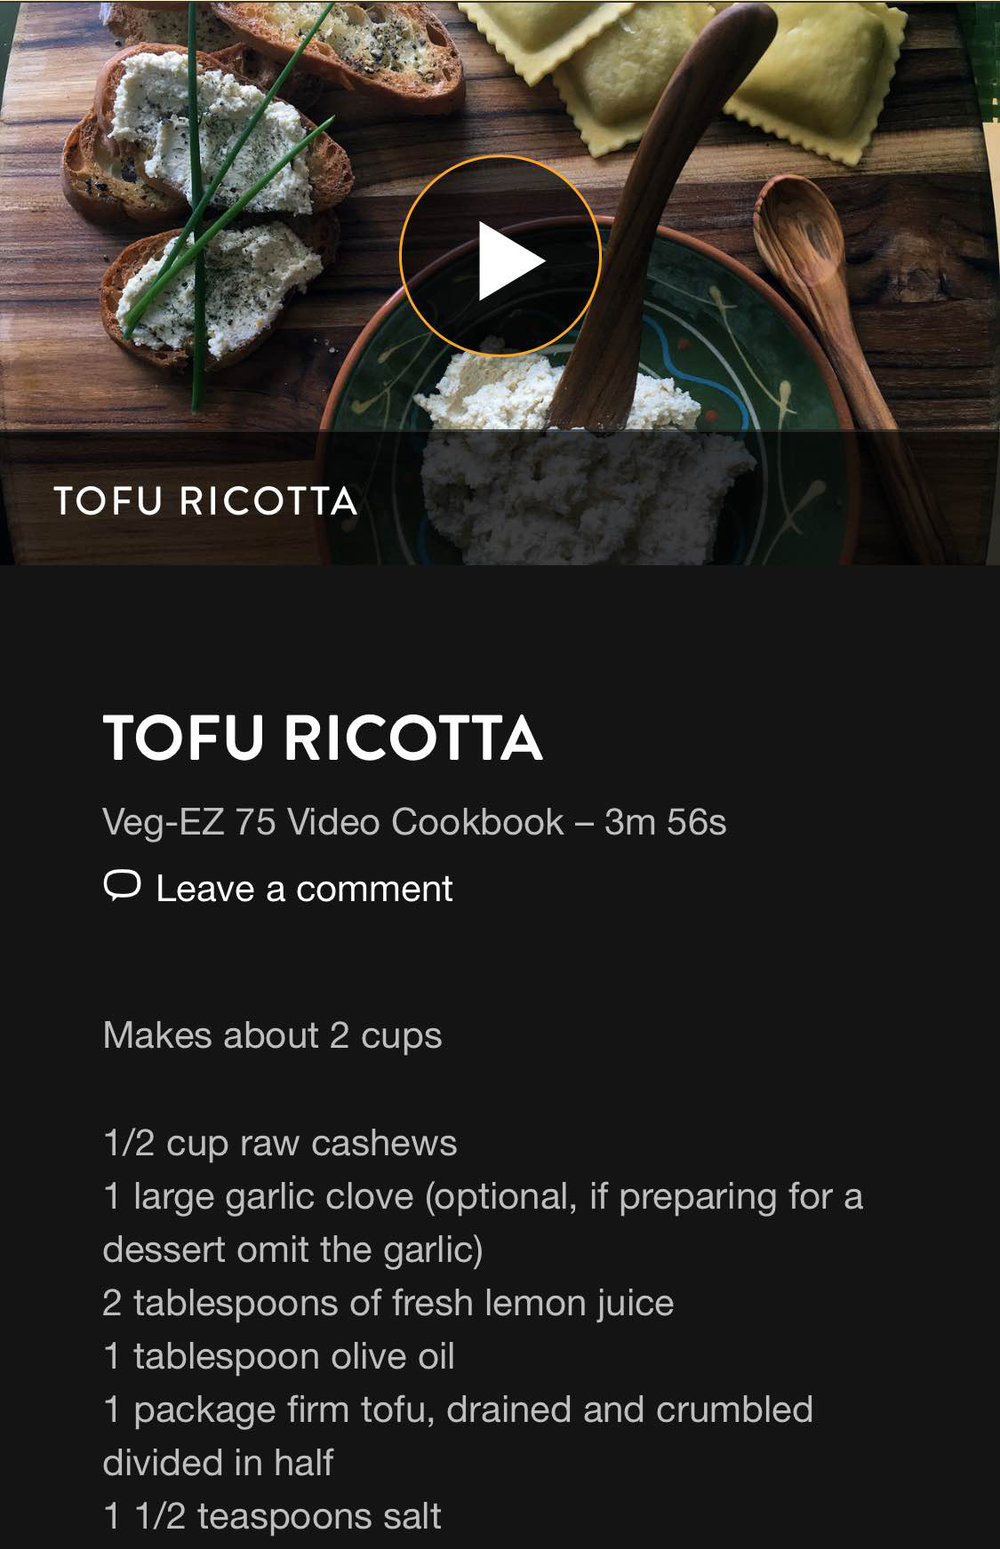 VegEZ Tofu Ticotta screenshoot.jpg